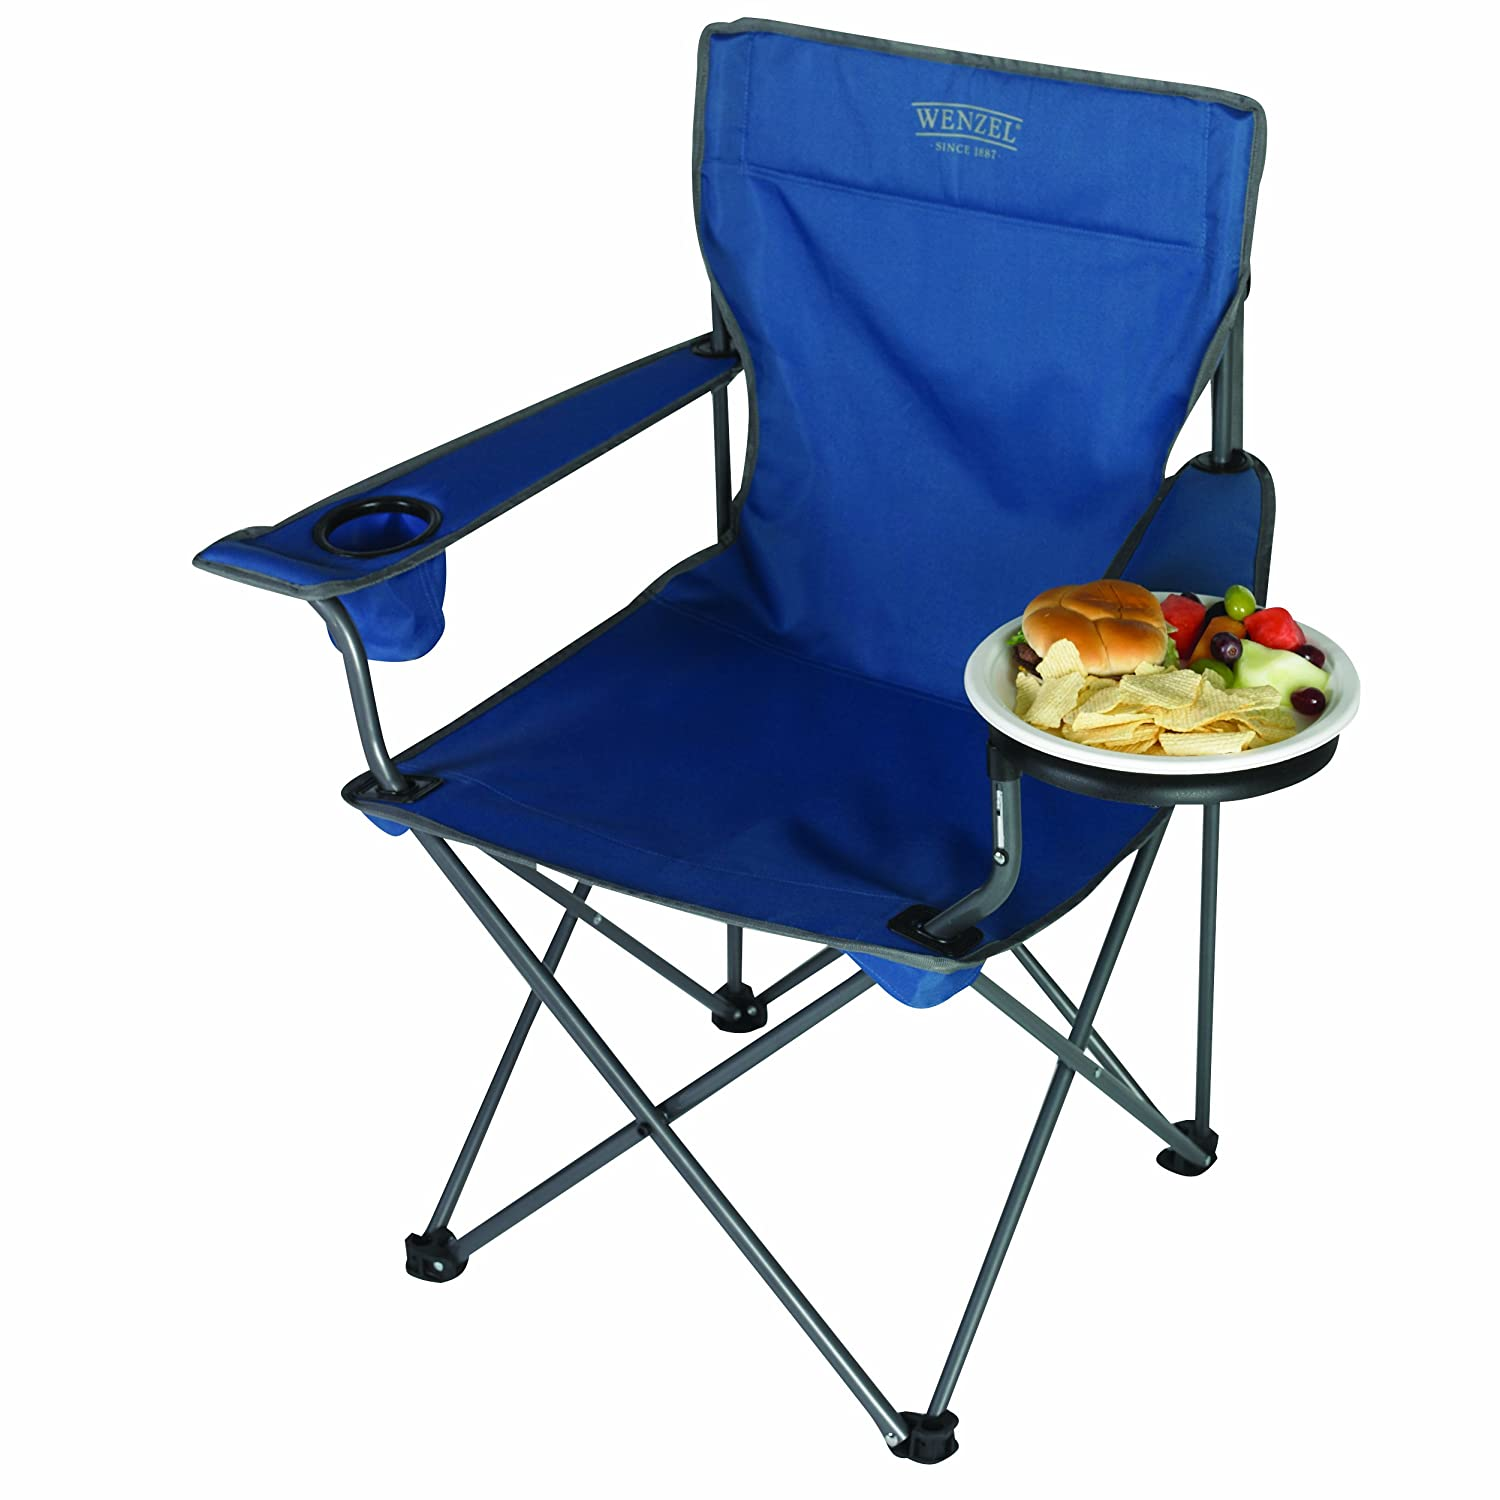 amazon com wenzel banquet chair camping chairs sports u0026 outdoors